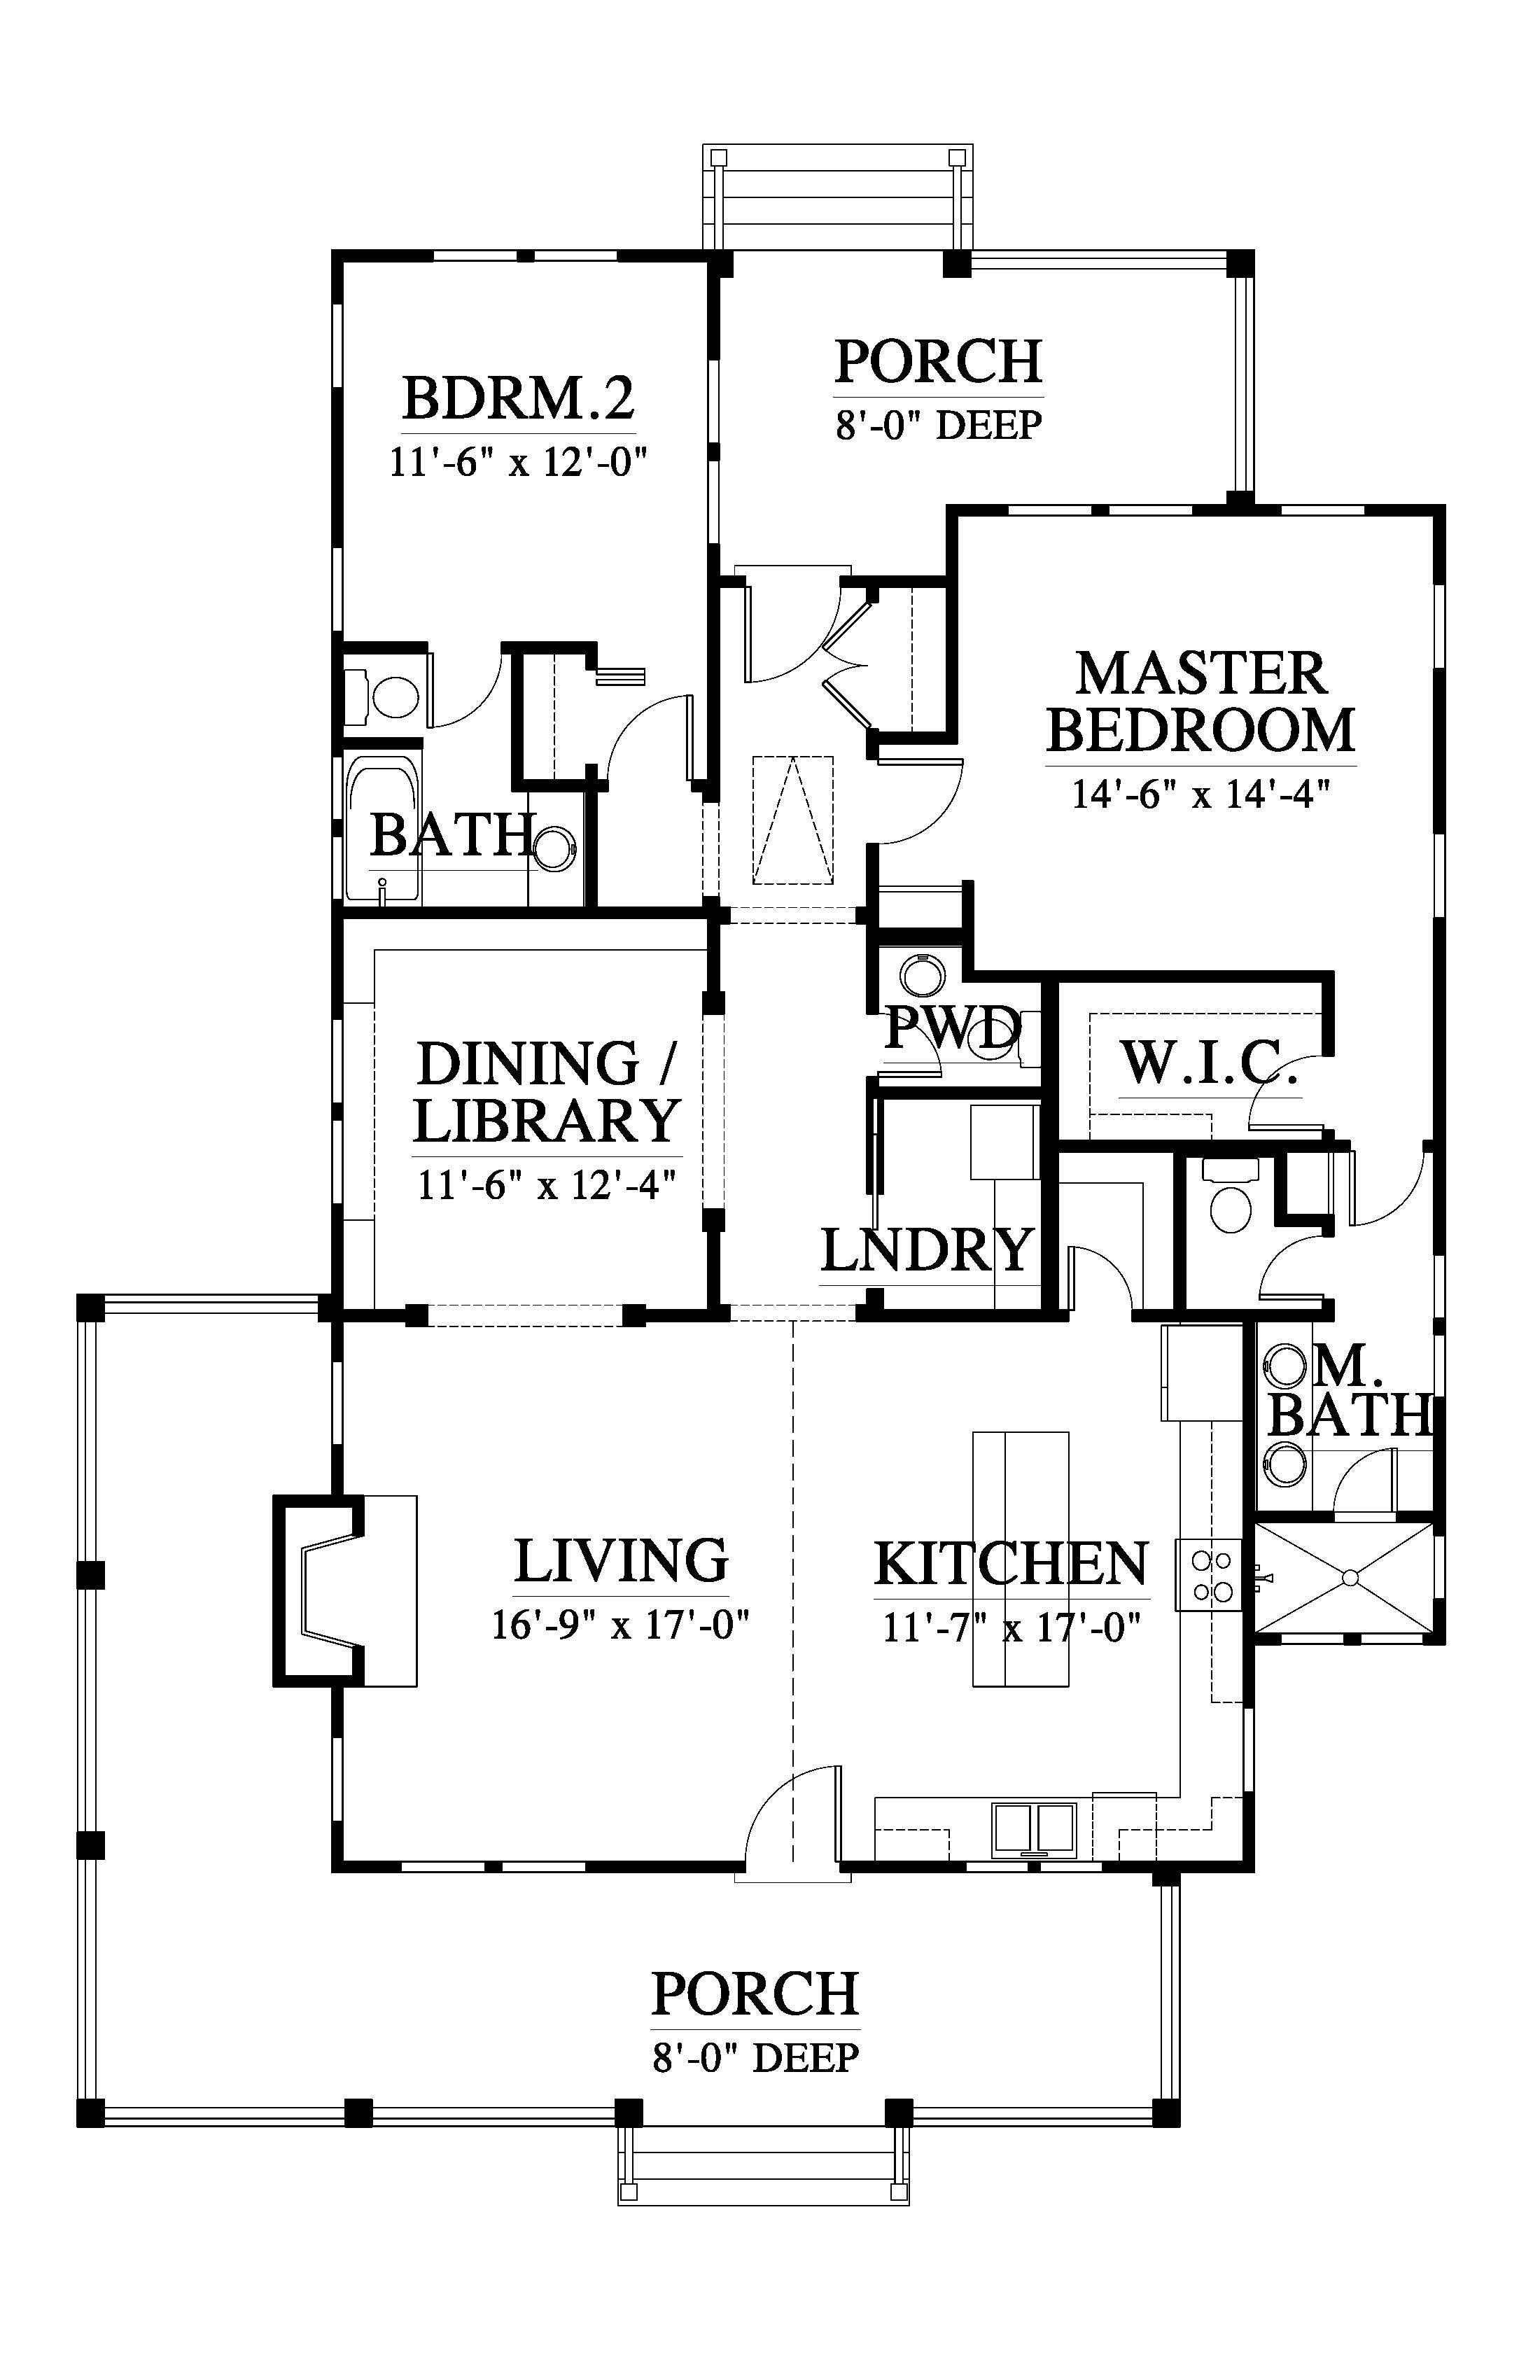 Whisper Creek Cottage House Plan C0568 Design from Allison Ramsey Architects